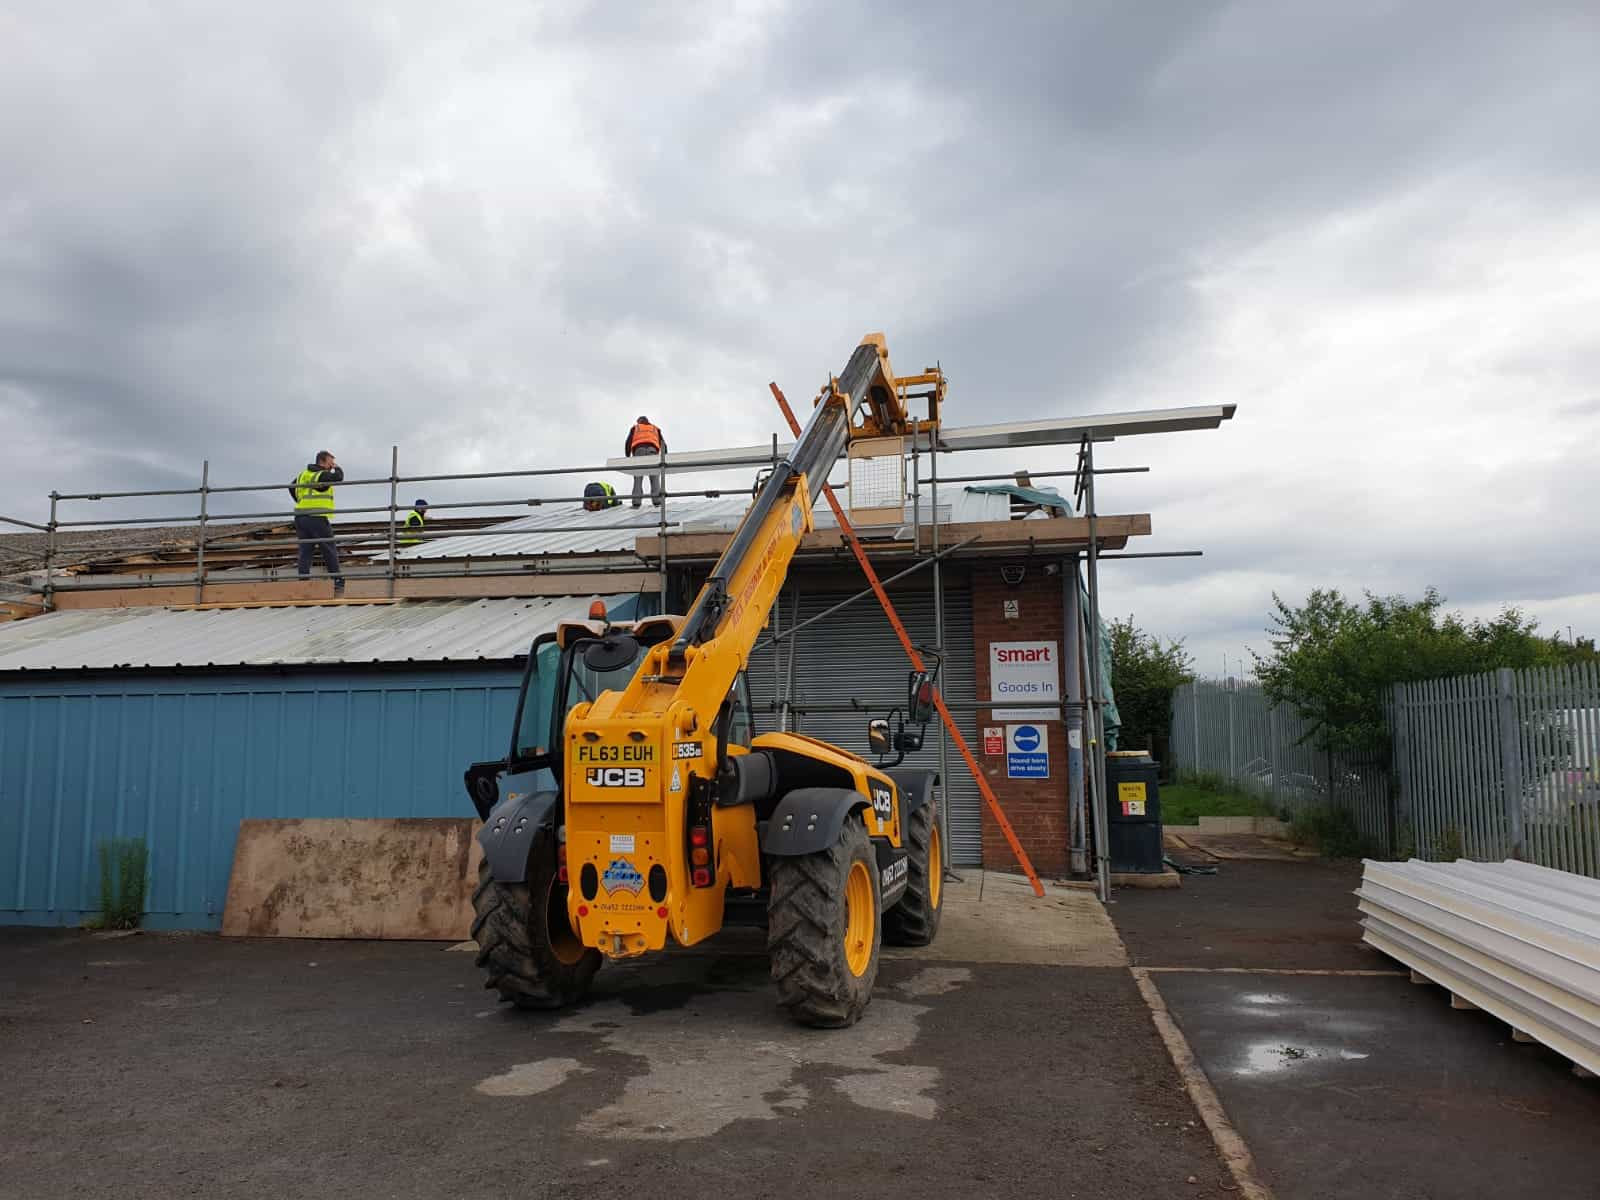 Machinery demolishing a roof that also has scaffolding on it